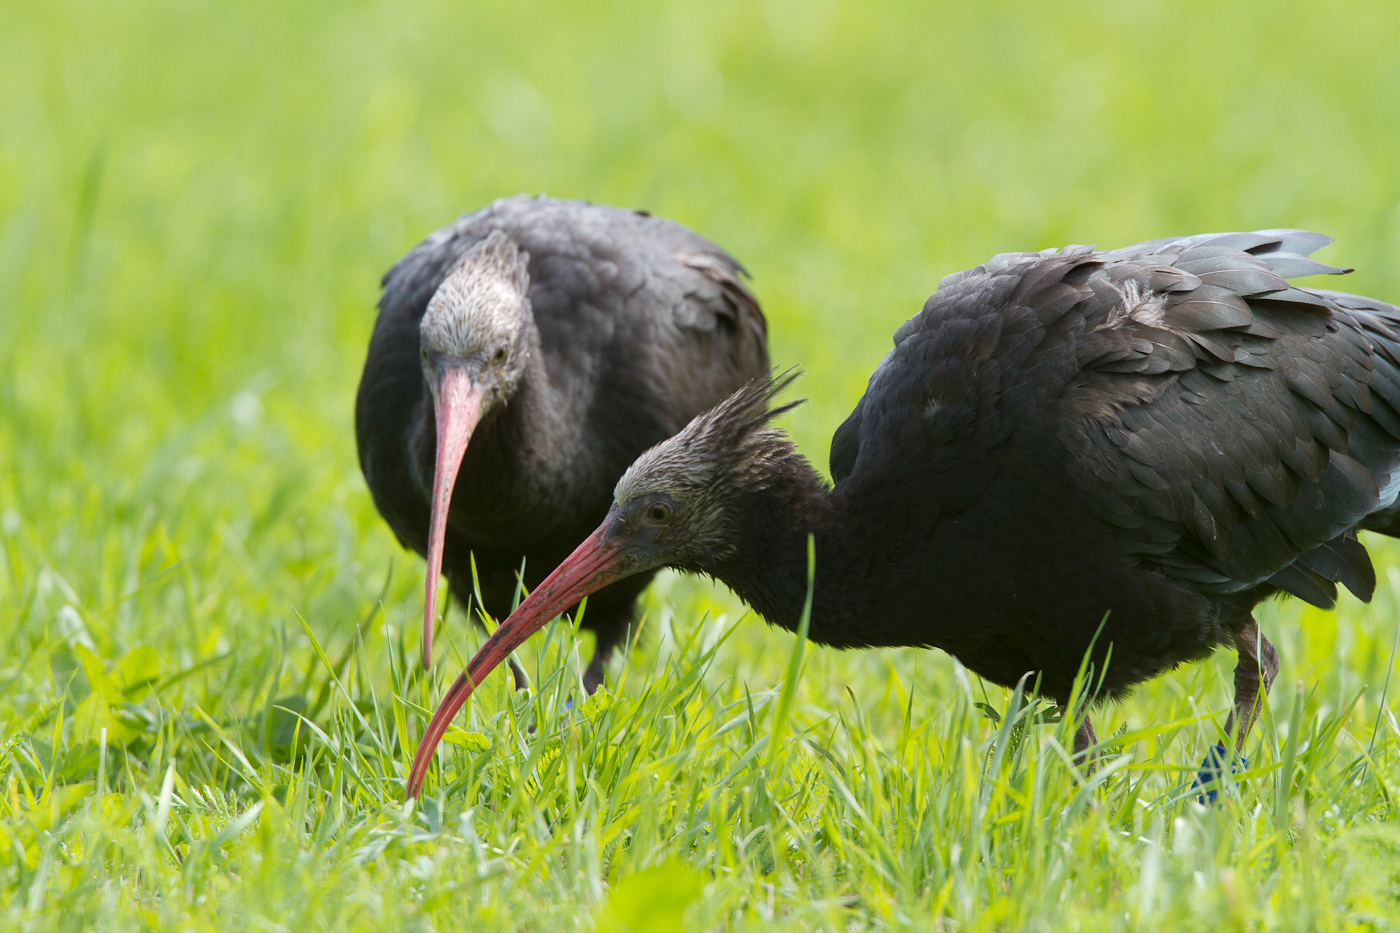 Northern Bald Ibis eat insects, worms and grubs. They normally nest high in the mountains.